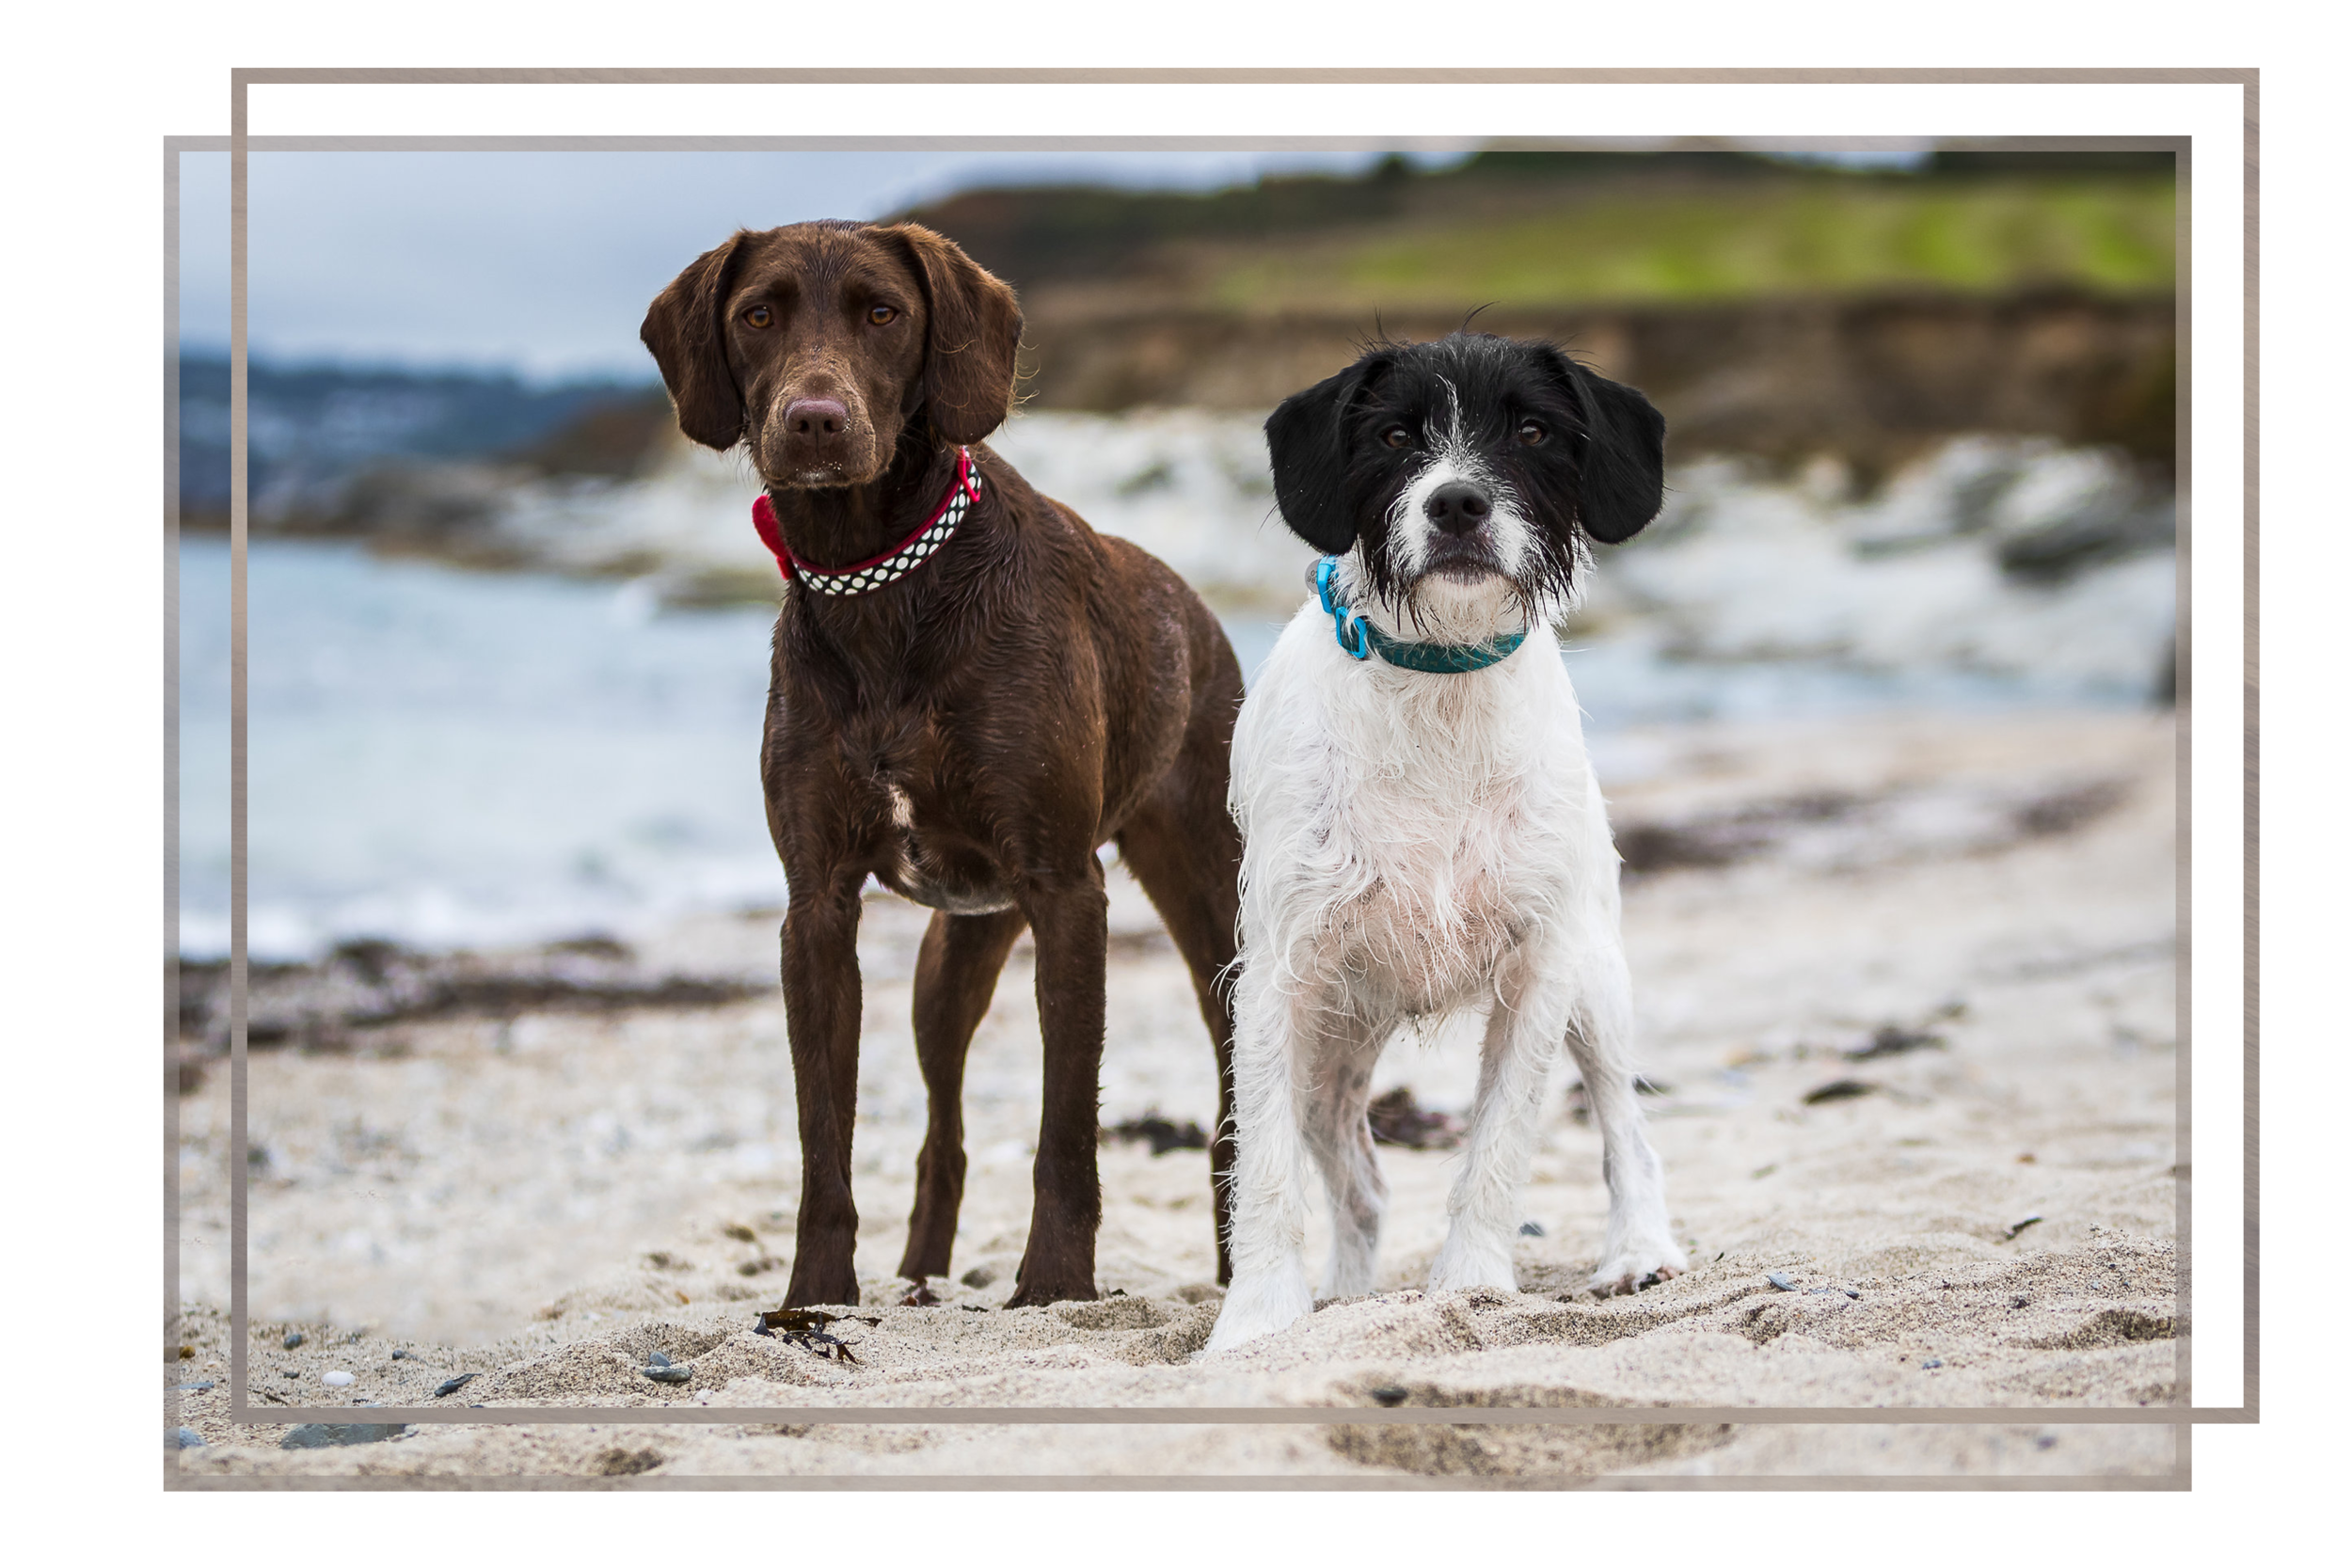 pet sessions - Is your pet an equal member of the family? Why not look at my pet sessions where I capture stunning photos of your best friends and your family together.